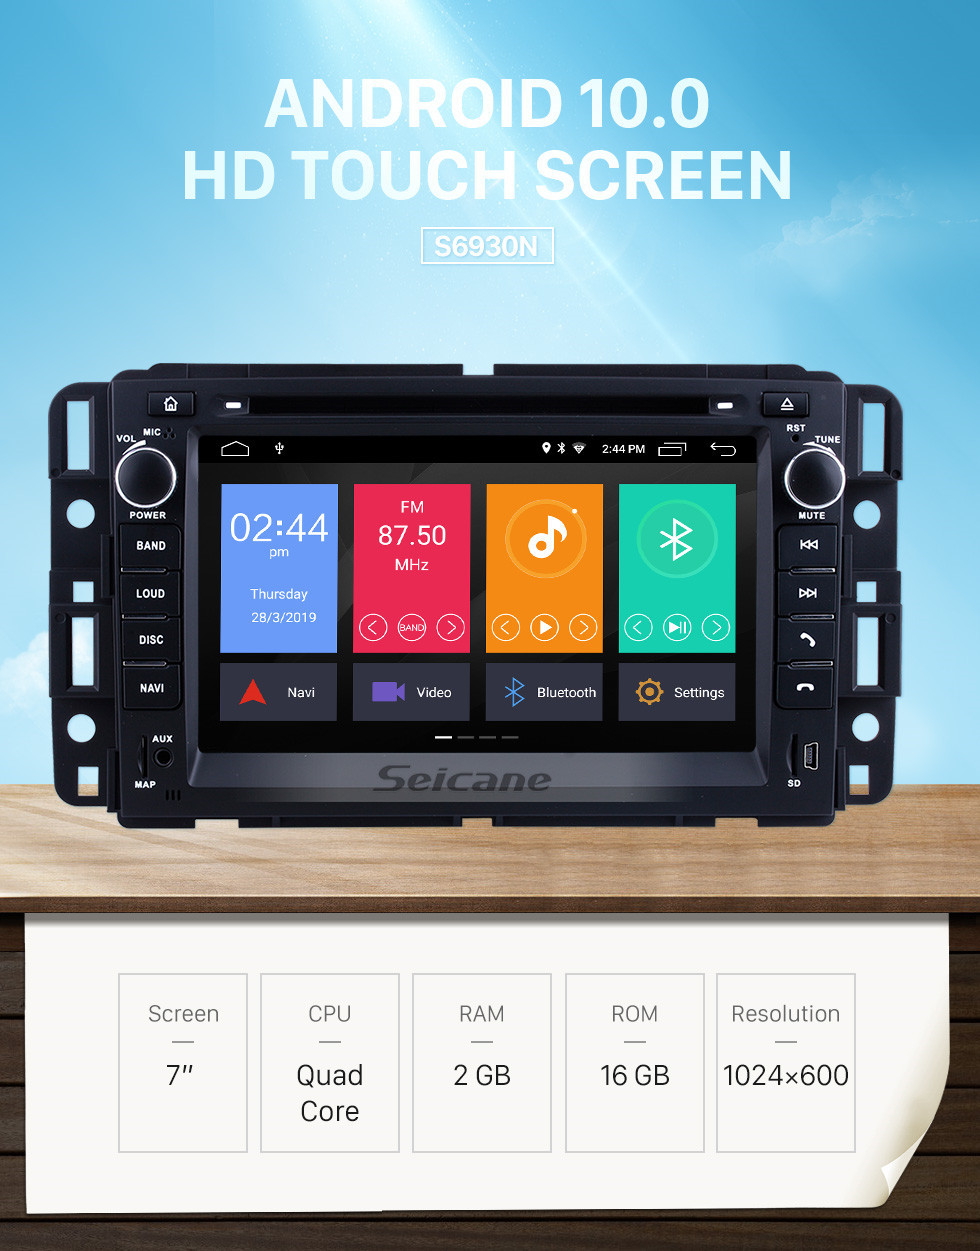 Seicane 2 Din Android 9.0 Radio Head Unit for 2009 2010 2011 GMC Chevy Chevrolet Express VAN Traverse with HD 1024*600 touchscreen GPS Sat Nav DVD Player Audio System WiFi Bluetooth Mirror Link 1080P Video